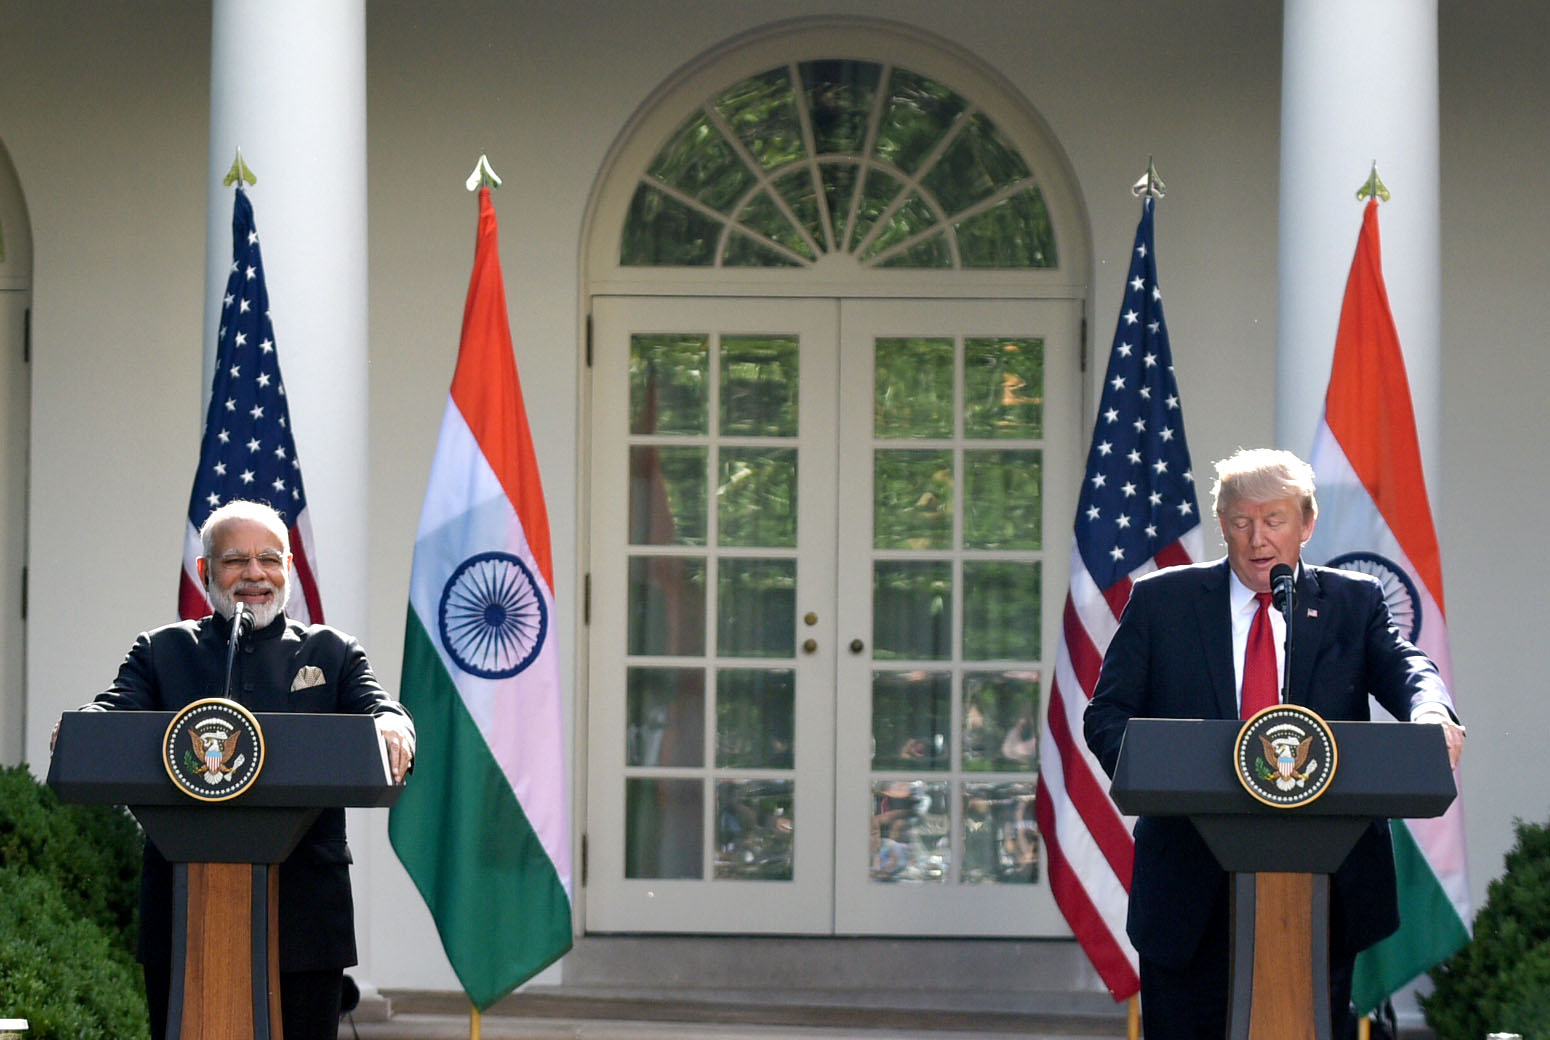 Swaraj said discussions between Modi and Trump in June covered all key areas of the India-US Strategic Partnership.